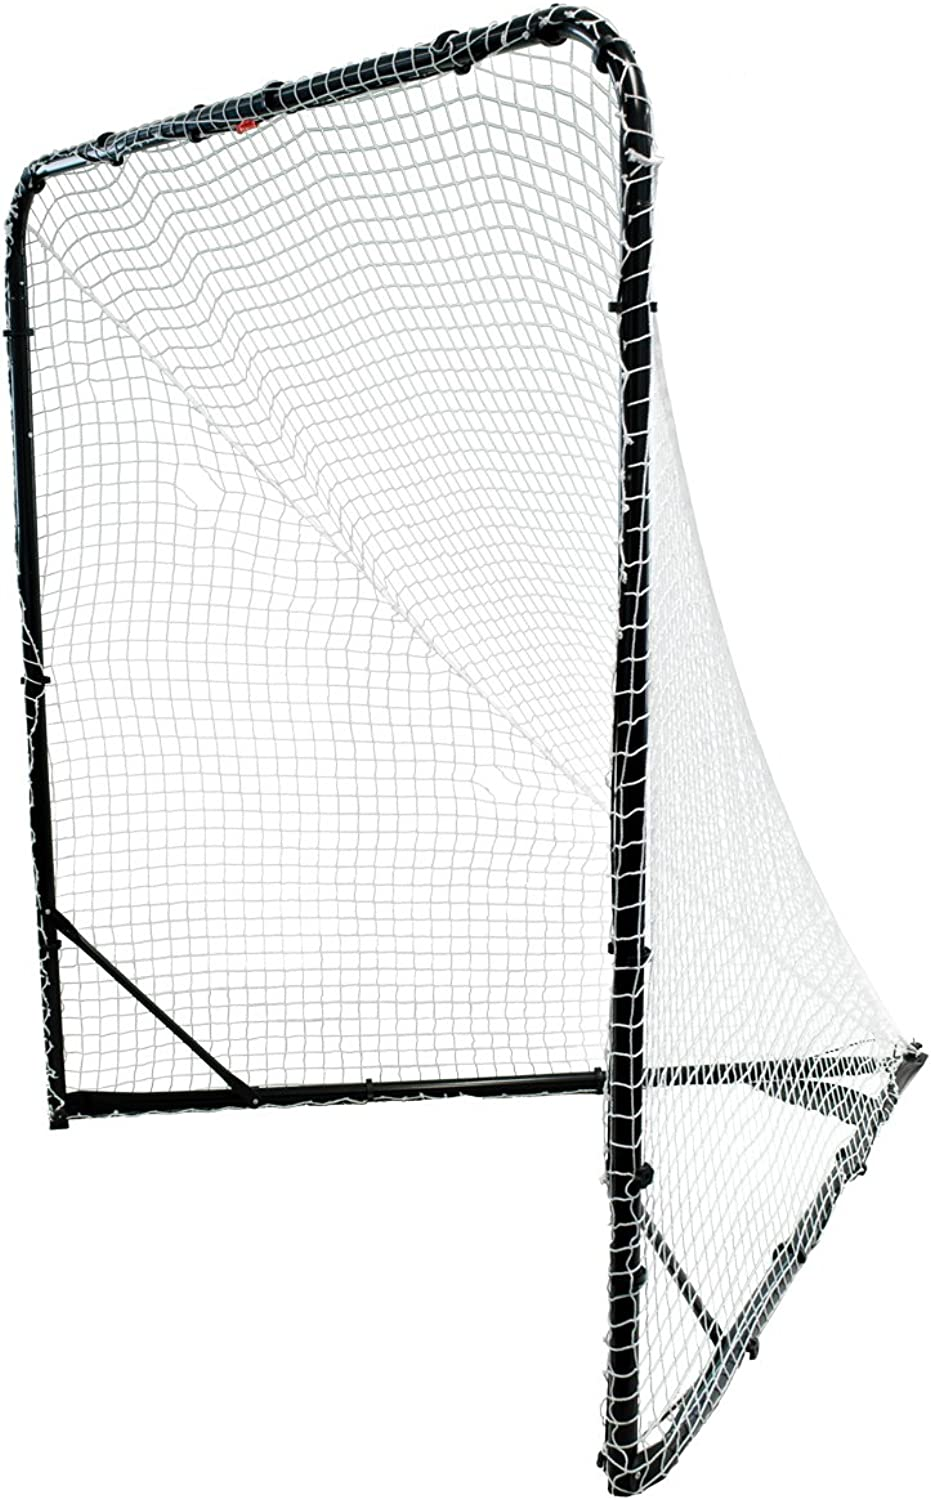 Park & Sun Sports Steel Frame Lacrosse Goal with Nylon Bungee Slip Net and Carrying Bag, 6' W x 6' H x 7' D